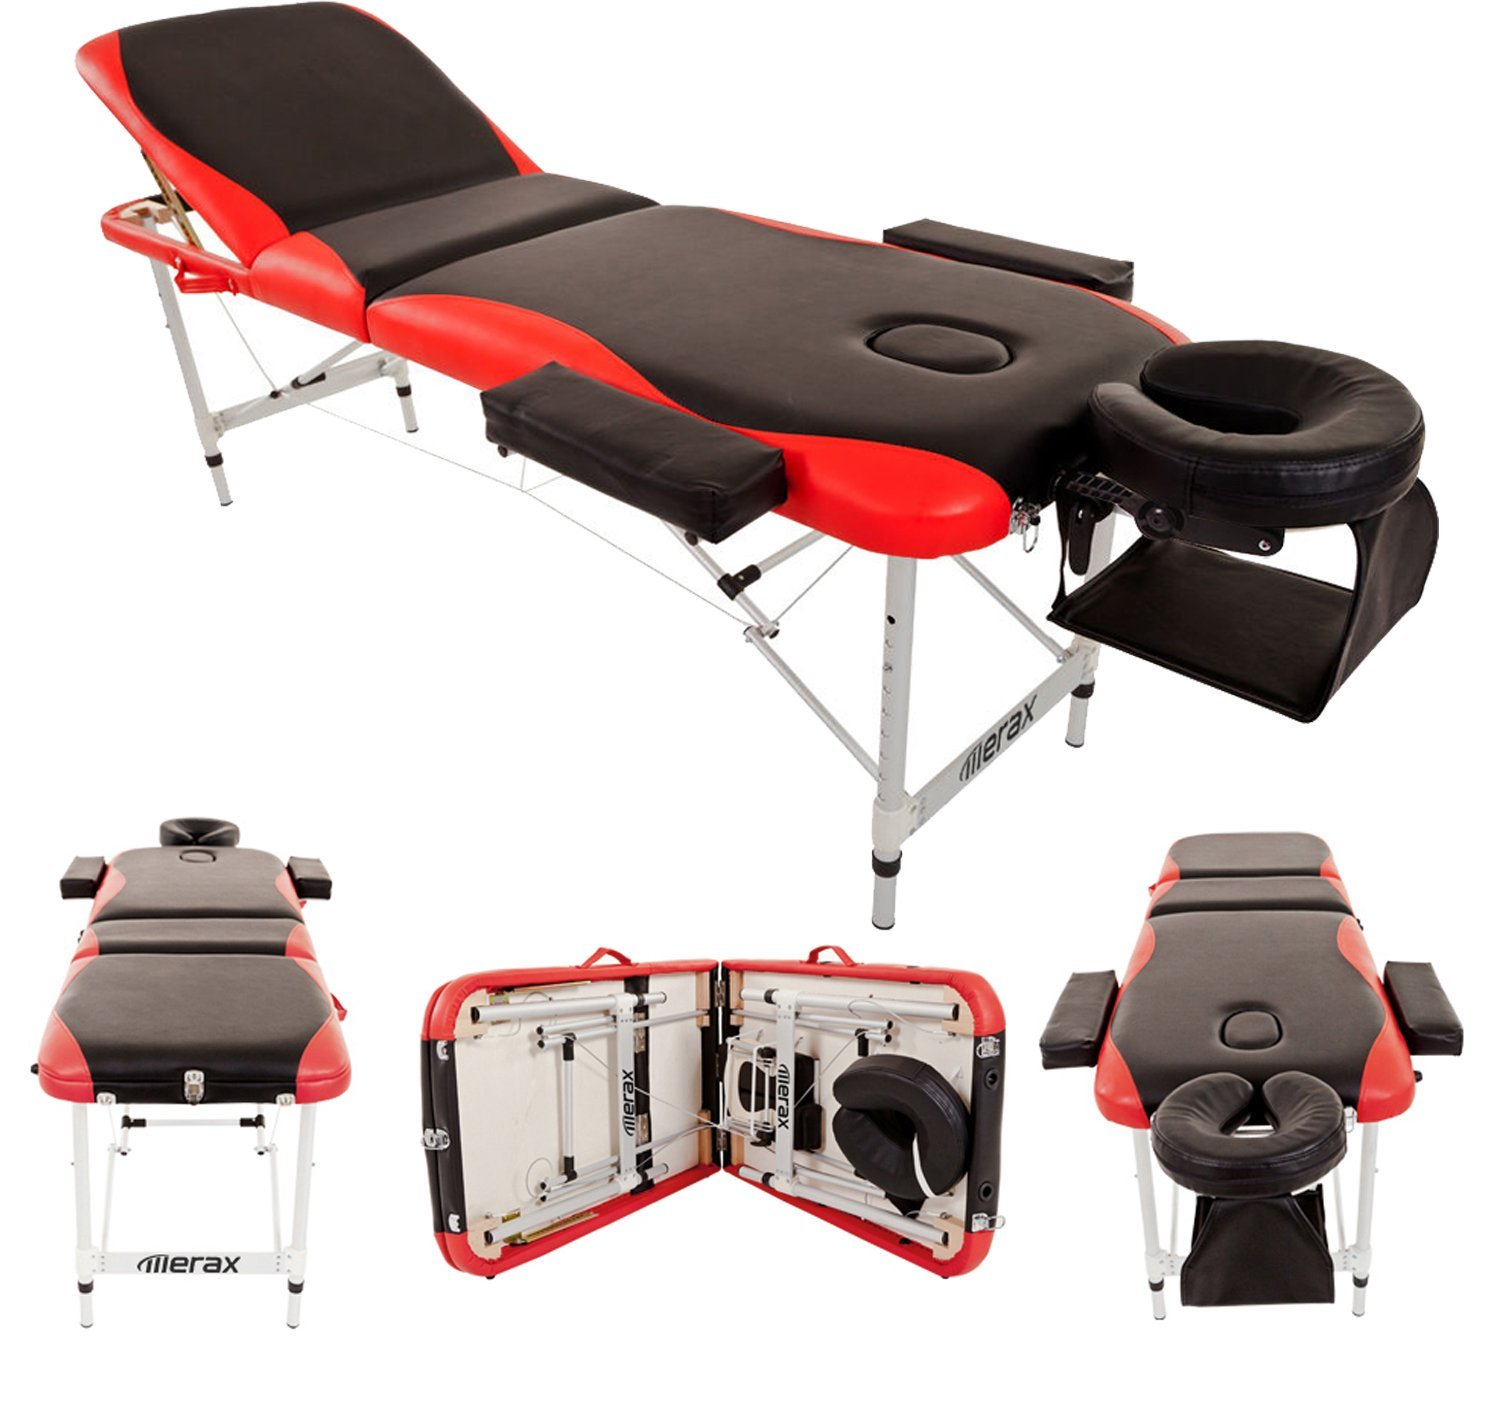 Merax WF015763JAA Aluminium 3 Section Portable Folding Massage Table Facial SPA Tattoo Bed by Merax (Image #1)